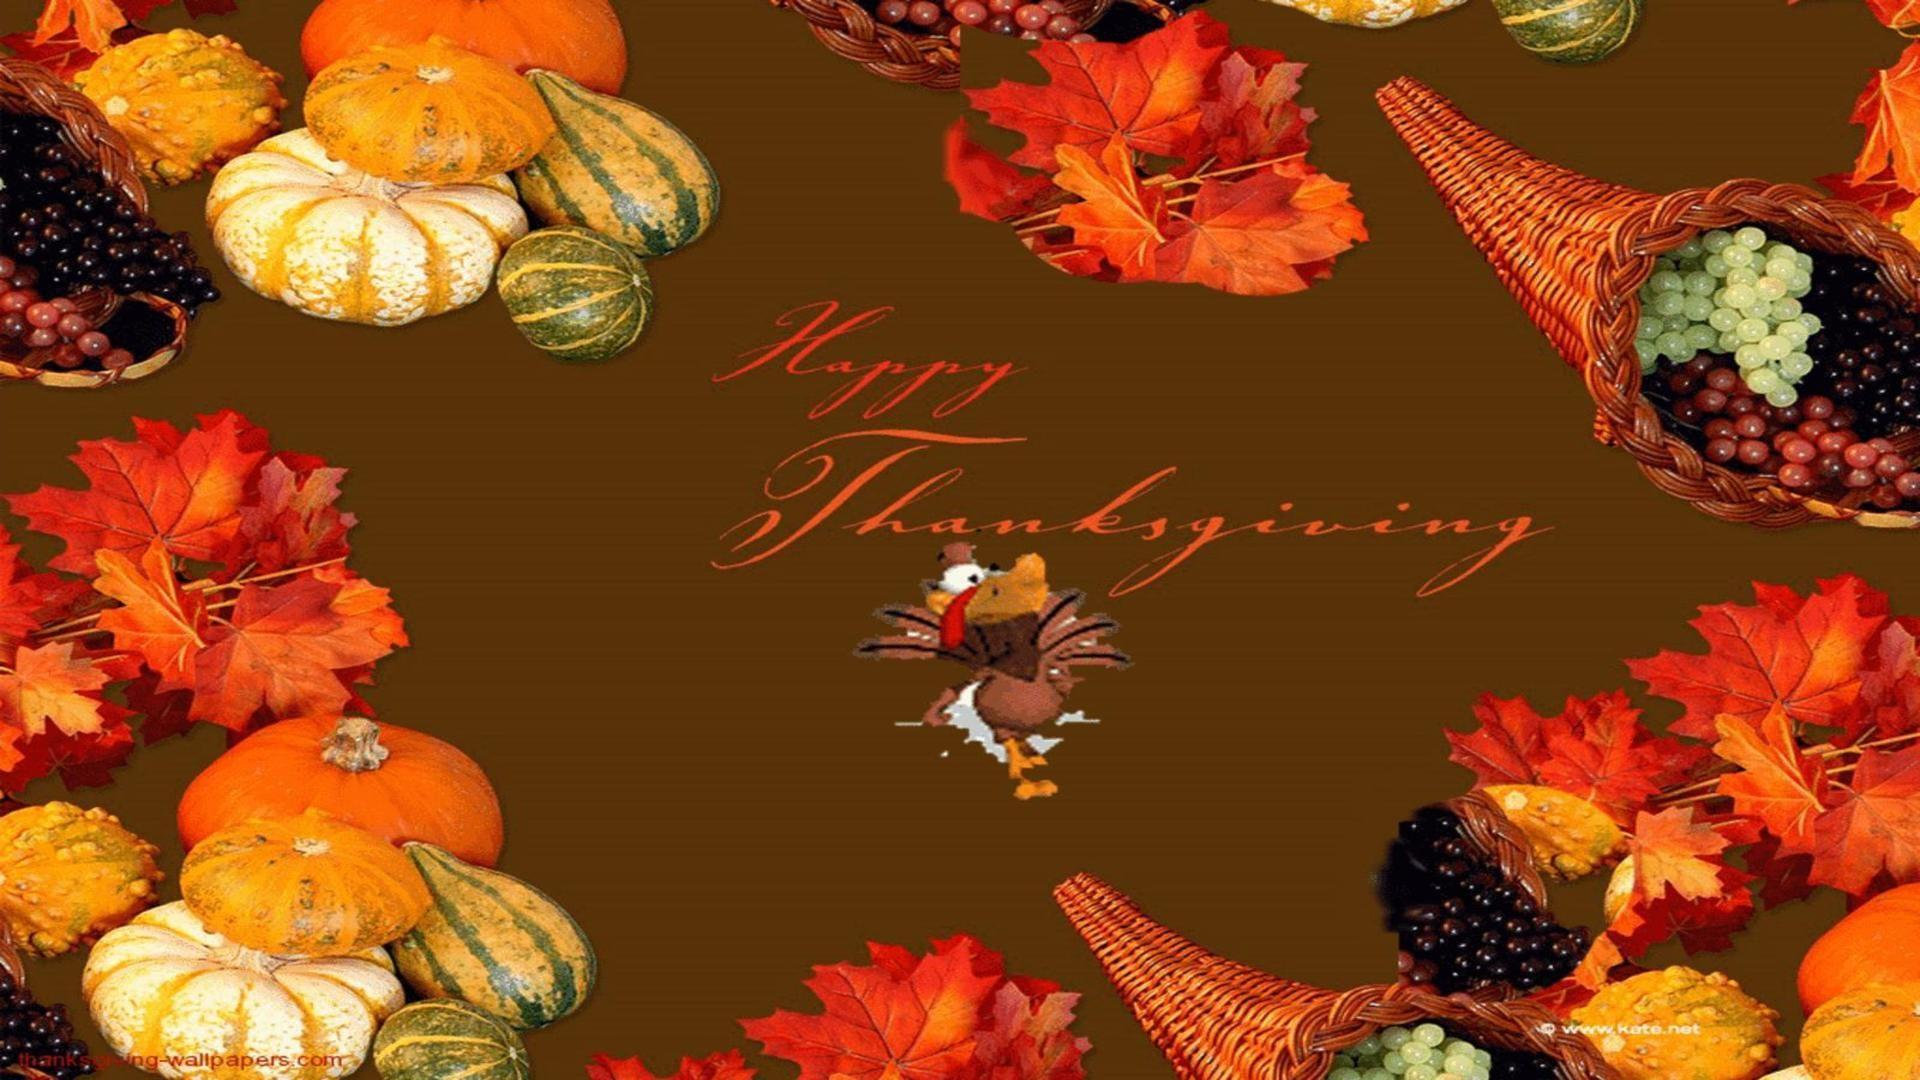 Happy thanksgiving day free greeting card free desktop backgrounds